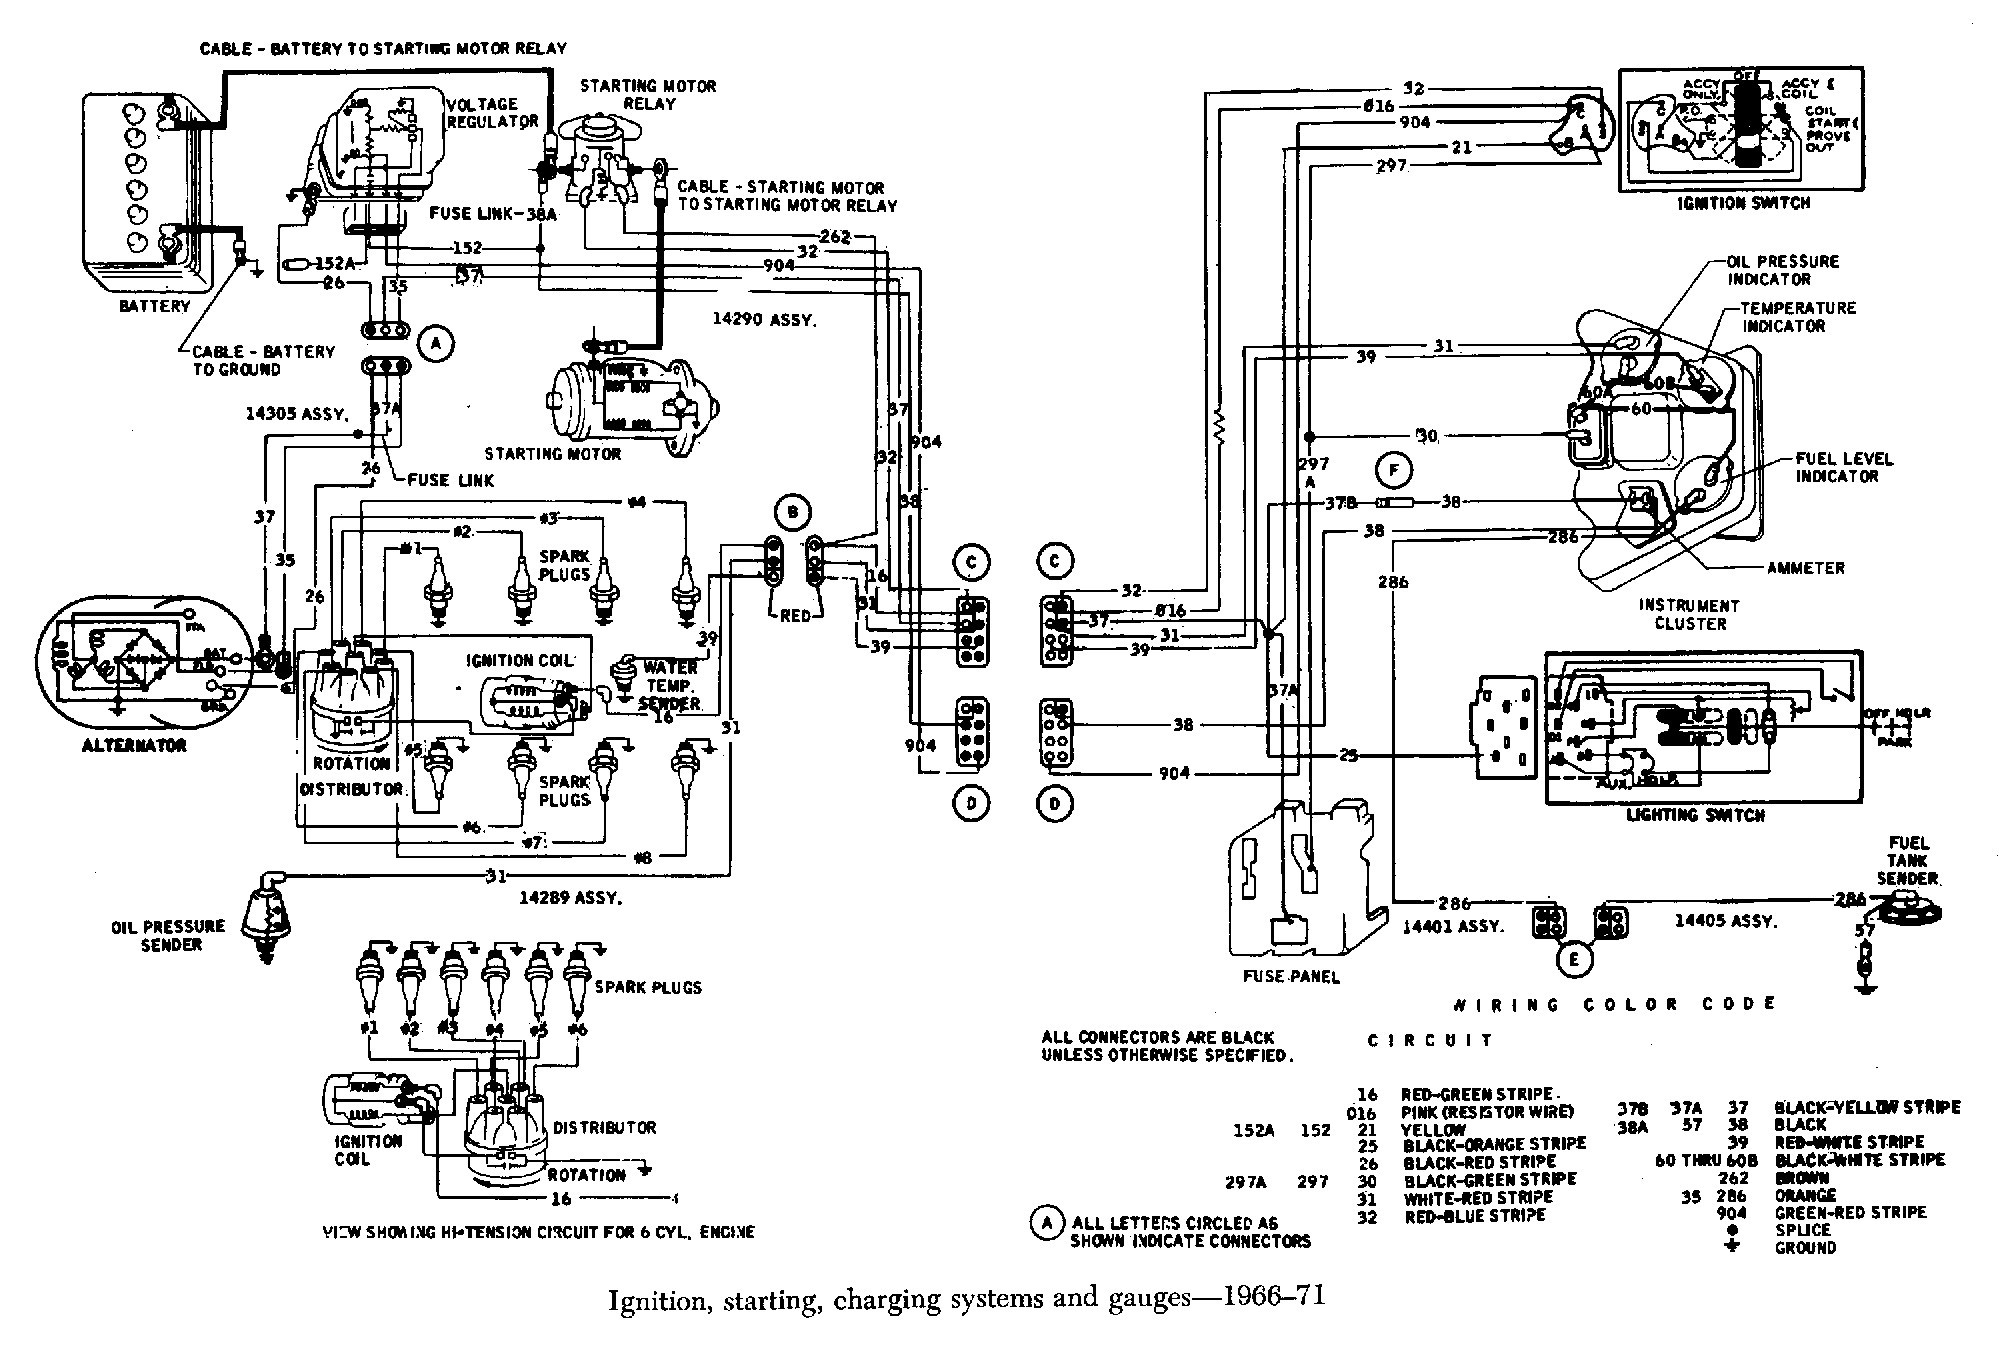 gm 350 engine diagram wiring diagram electricity basics 101 u2022 rh casamagdalena us